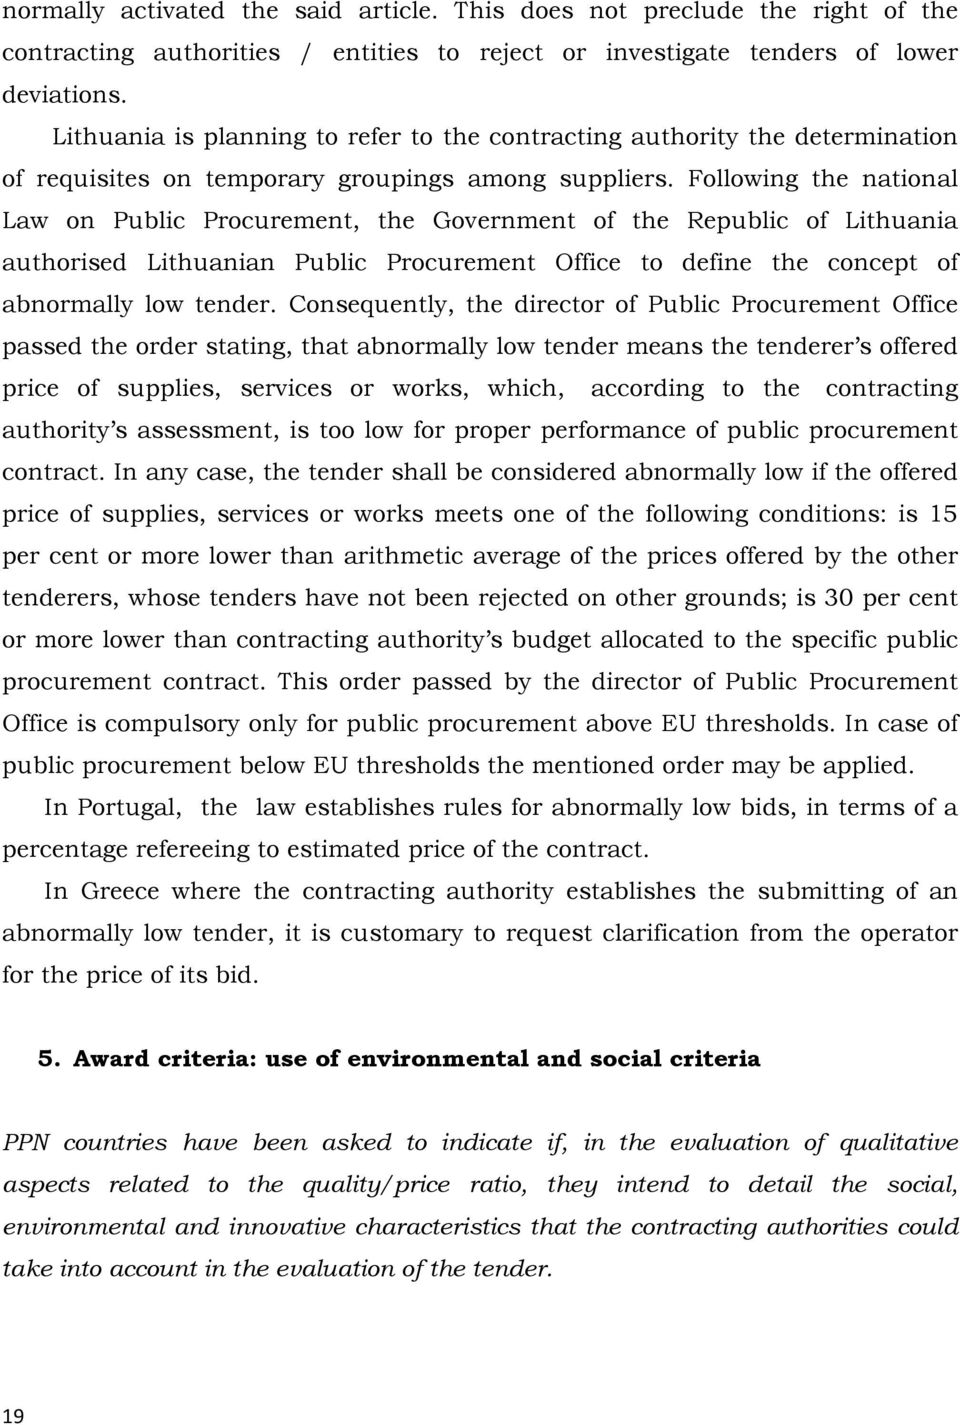 Following the national Law on Public Procurement, the Government of the Republic of Lithuania authorised Lithuanian Public Procurement Office to define the concept of abnormally low tender.